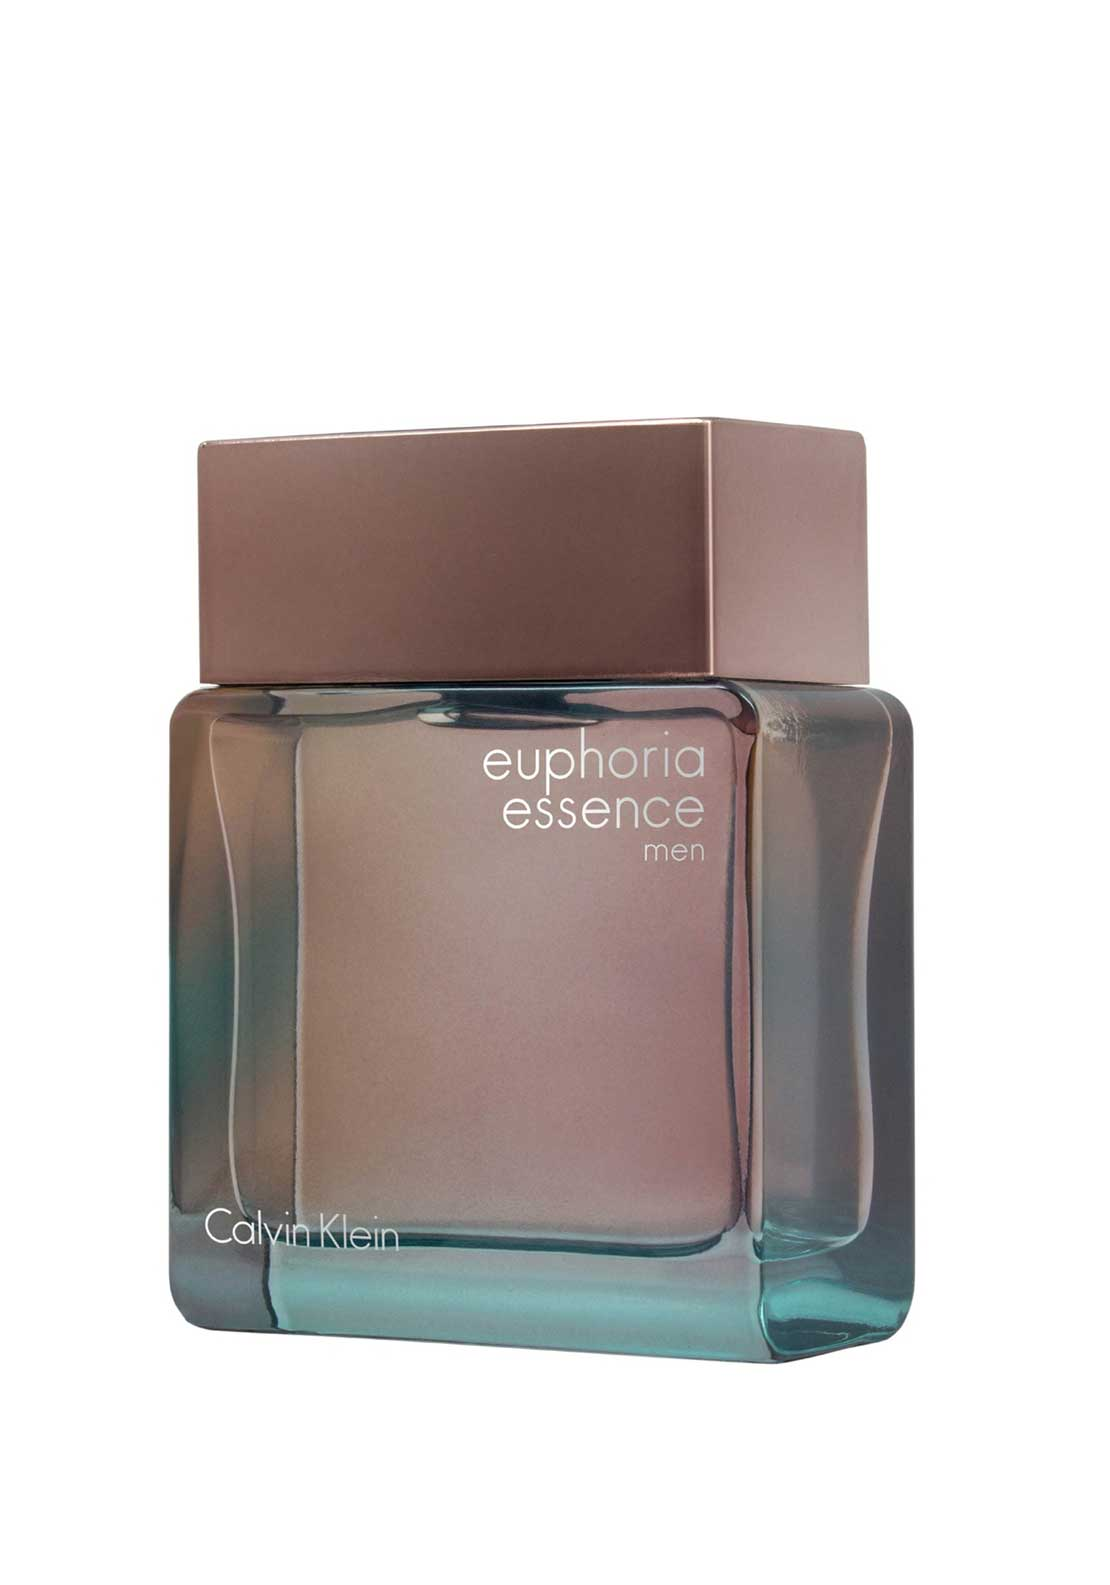 Calvin Klein Euphoria Essence Men Eau de Toilette Spray, 30ml